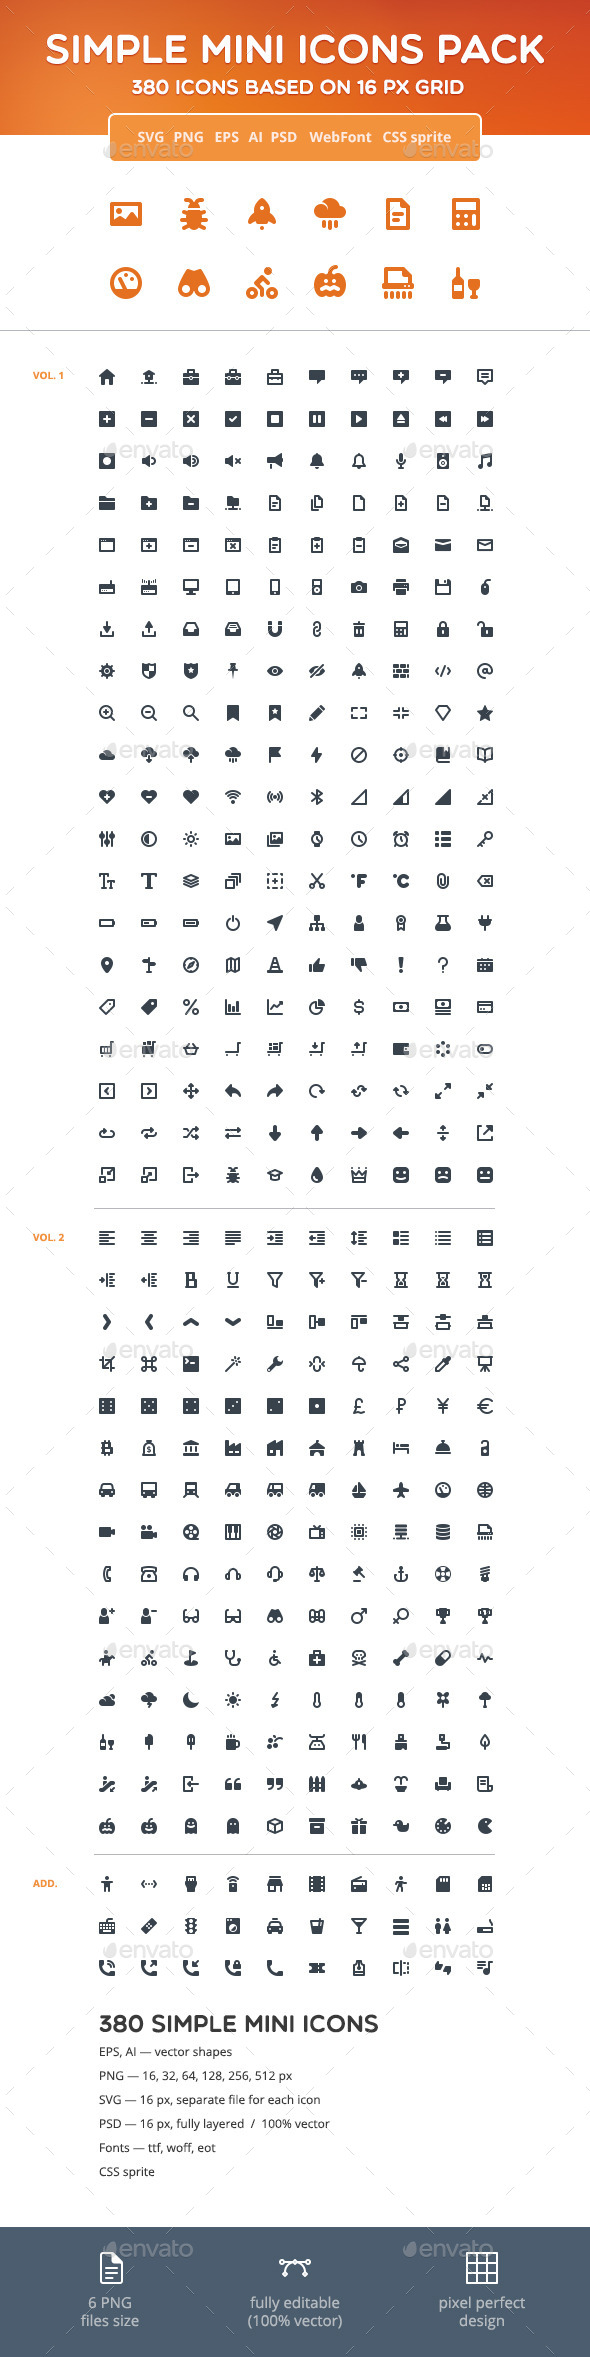 Simple Mini Icons Pack - Web Icons